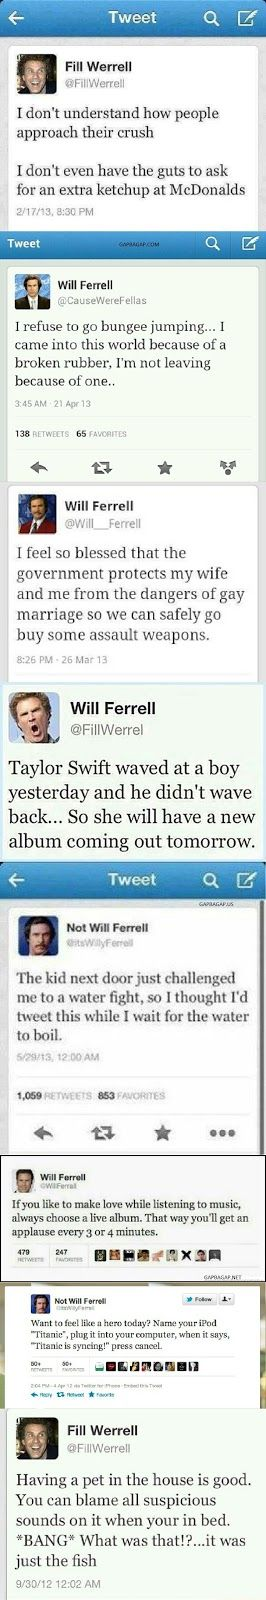 Top 8 Hilarious Tweets By Will Ferrell (Favorite Meme Hilarious)